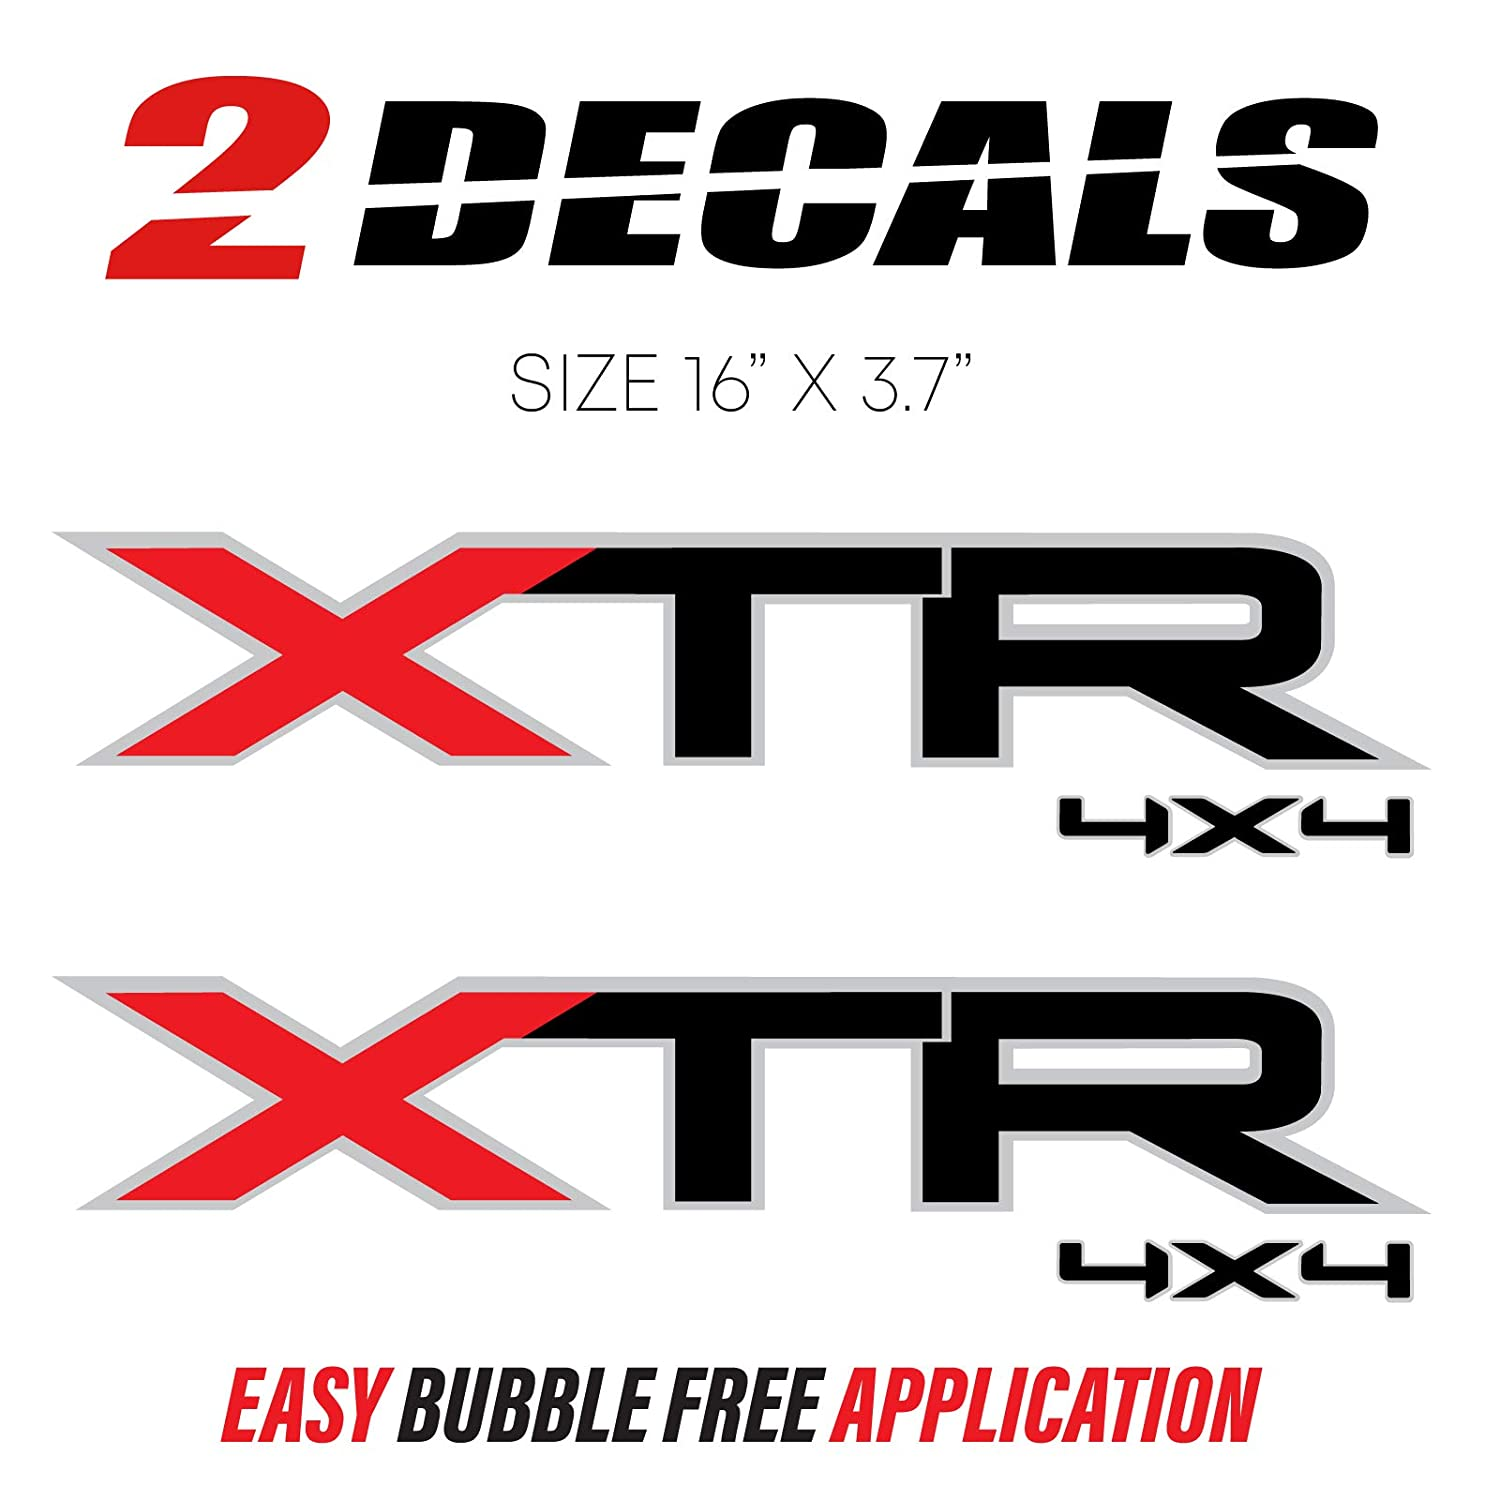 2004-2014 Ford F-150 XTR 4x4 Decal Stickers Truck Bed Side Set of 2